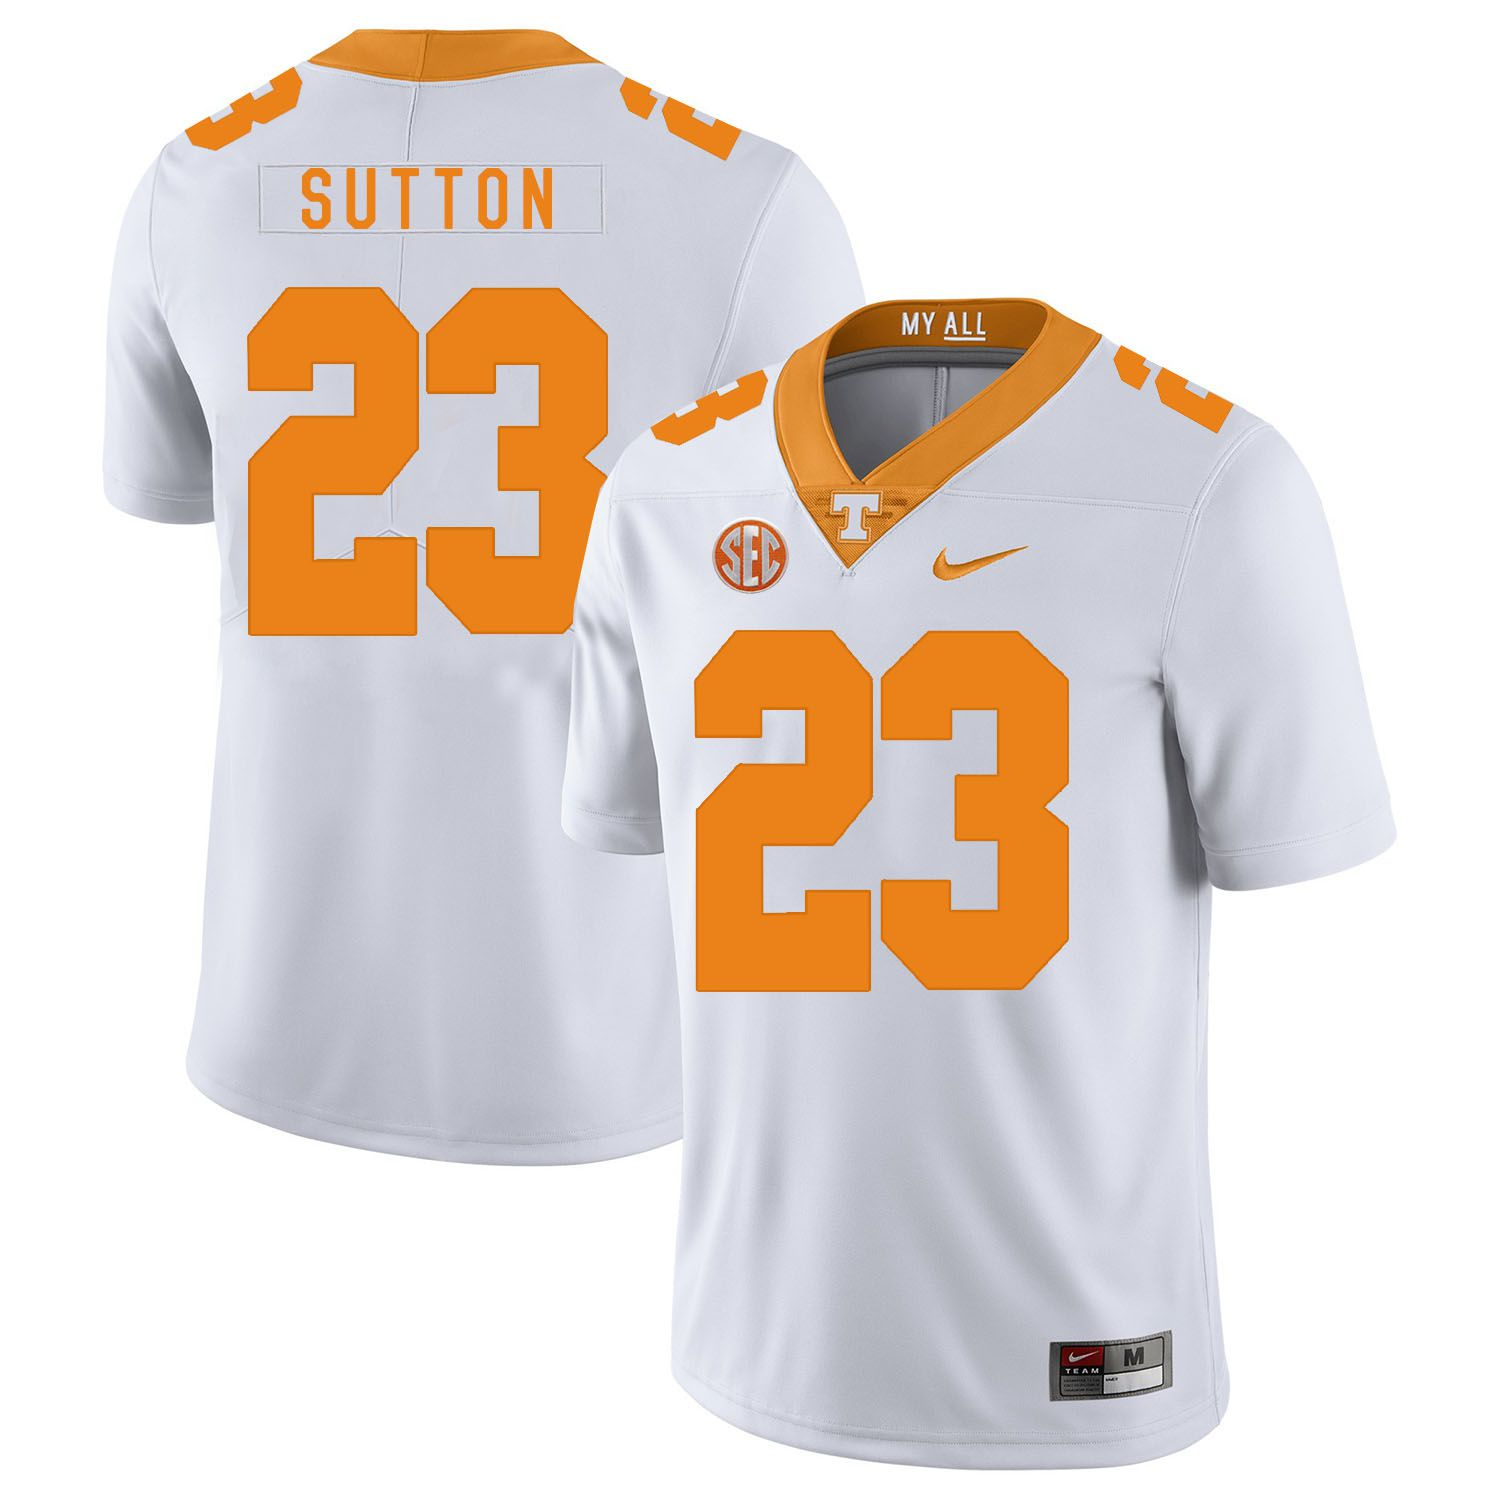 Men Tennessee Volunteers 23 Sutton White Customized NCAA Jerseys